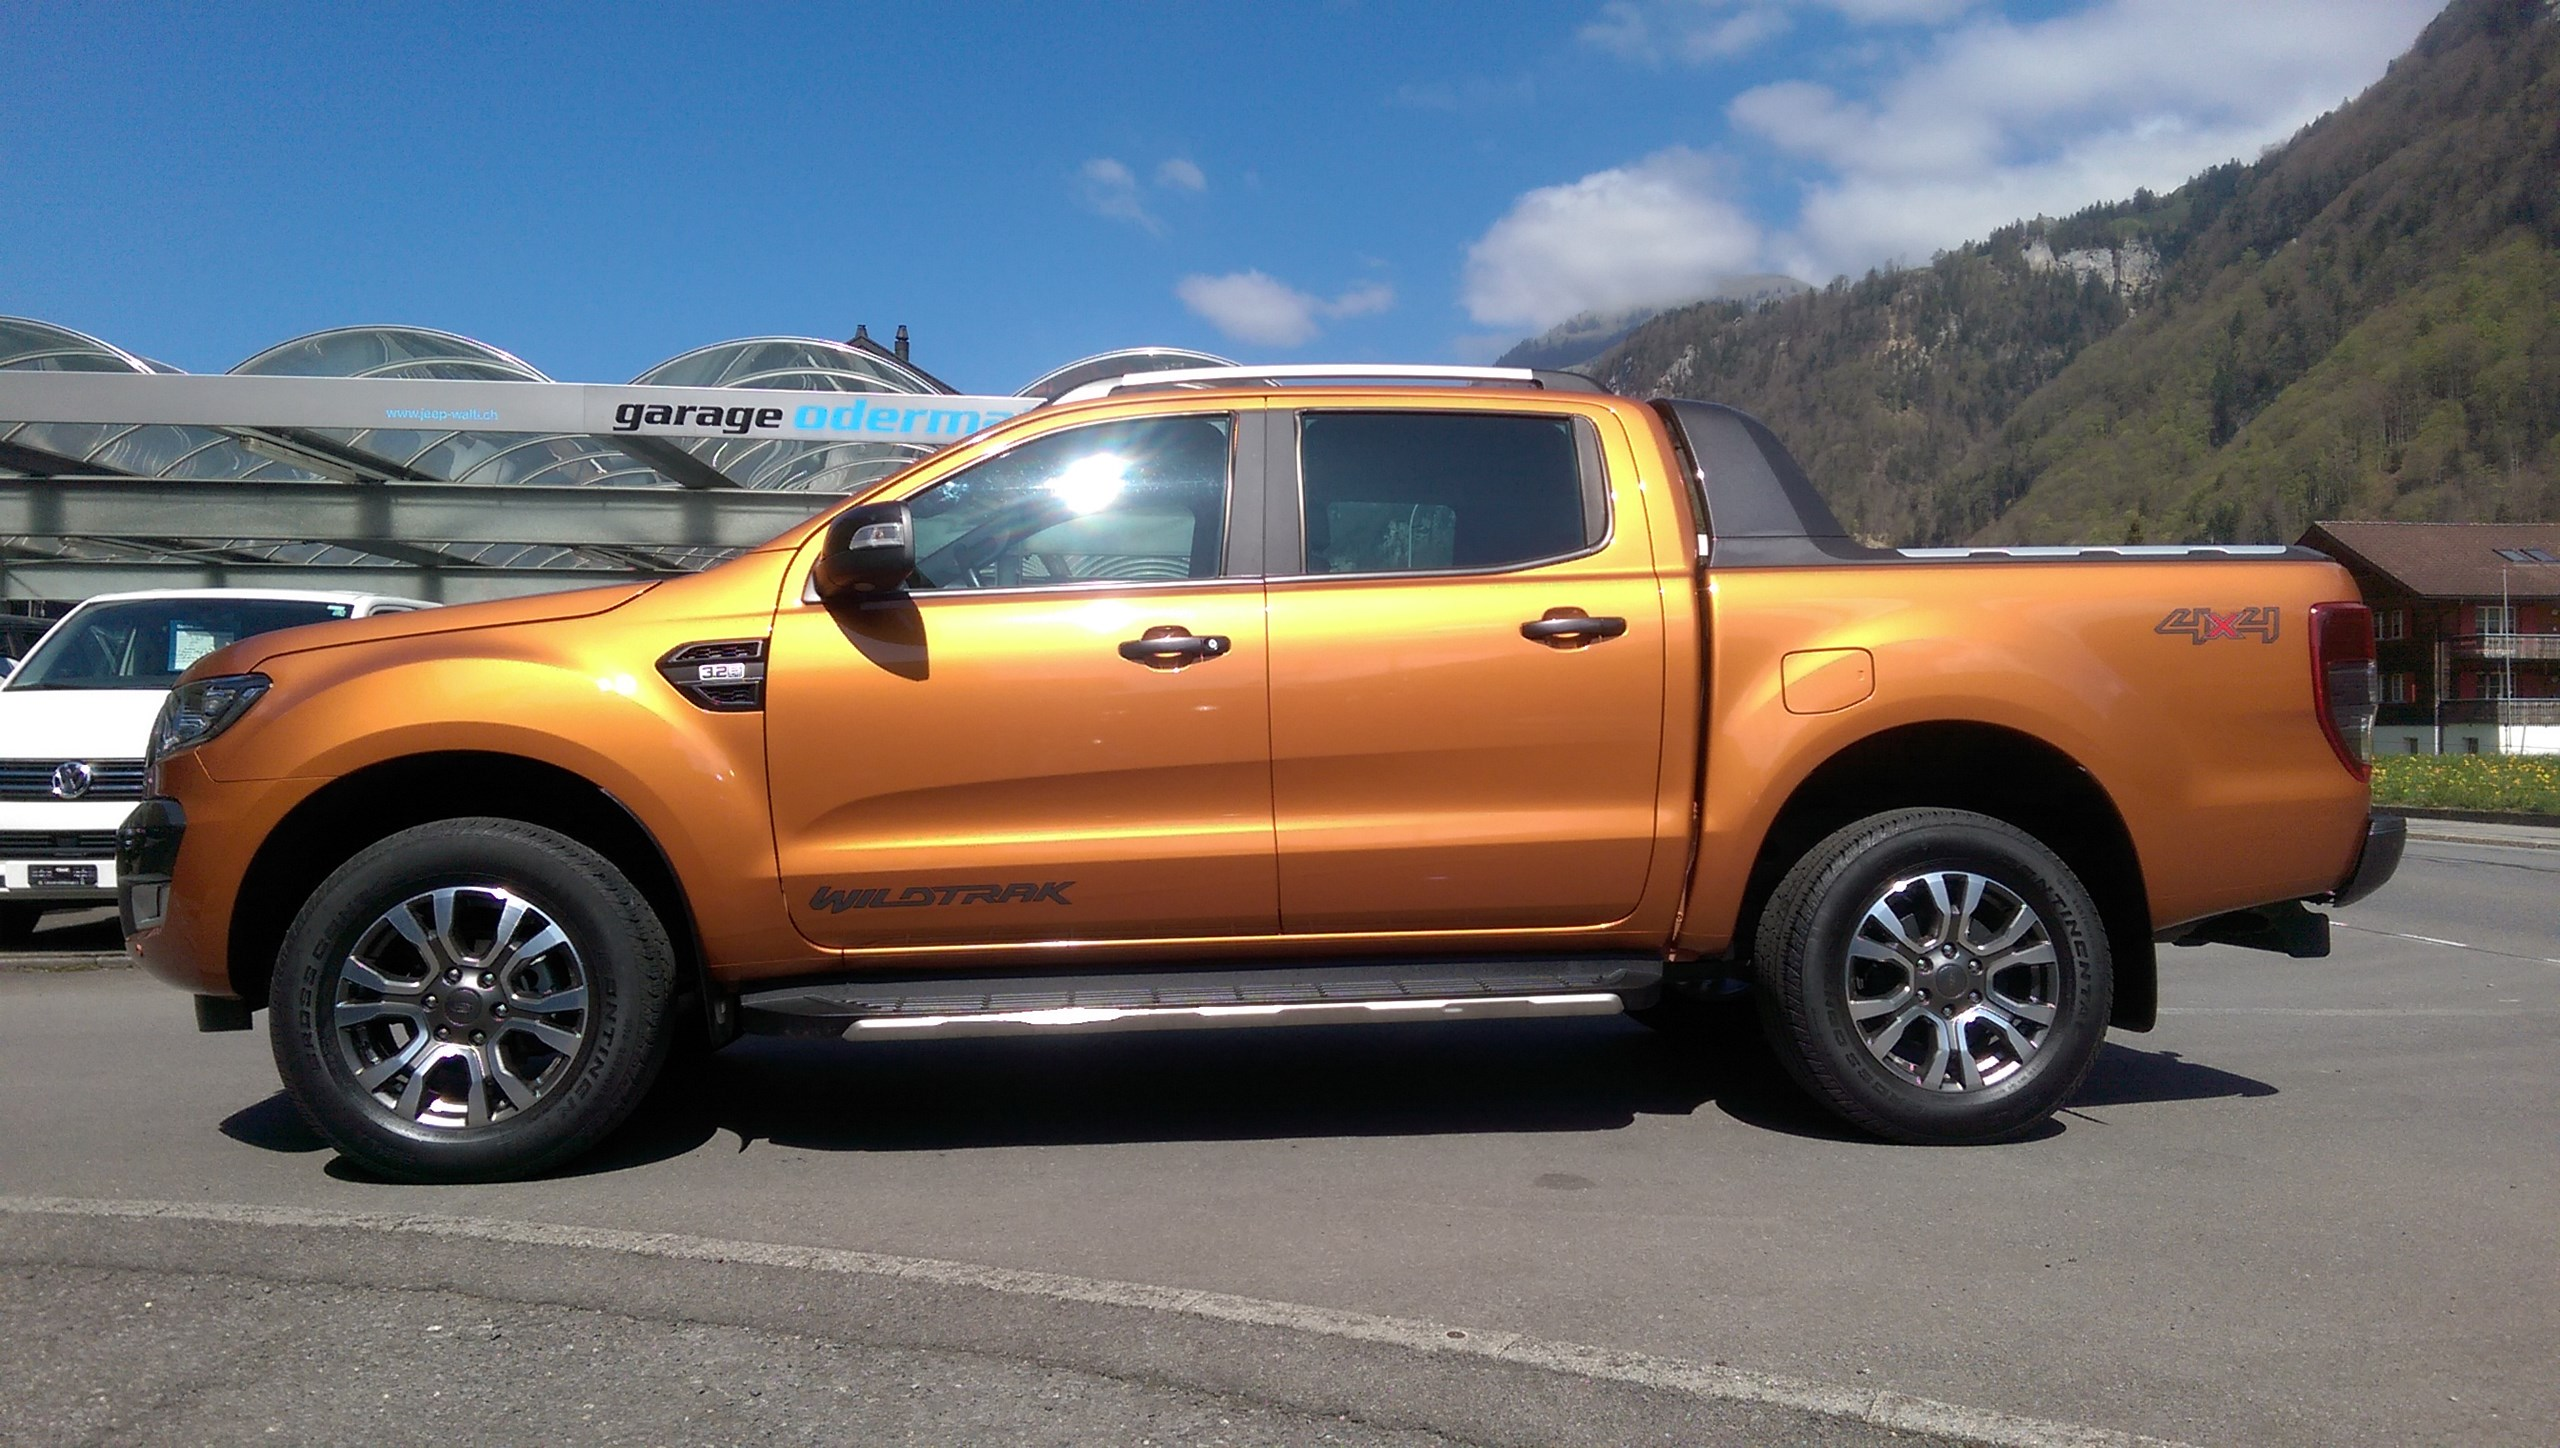 Buy Used Car Suv Ford Ranger Wildtrak 3 2 Tdci 4x4 A 14300 Km At 39800 Chf On Carforyou Ch